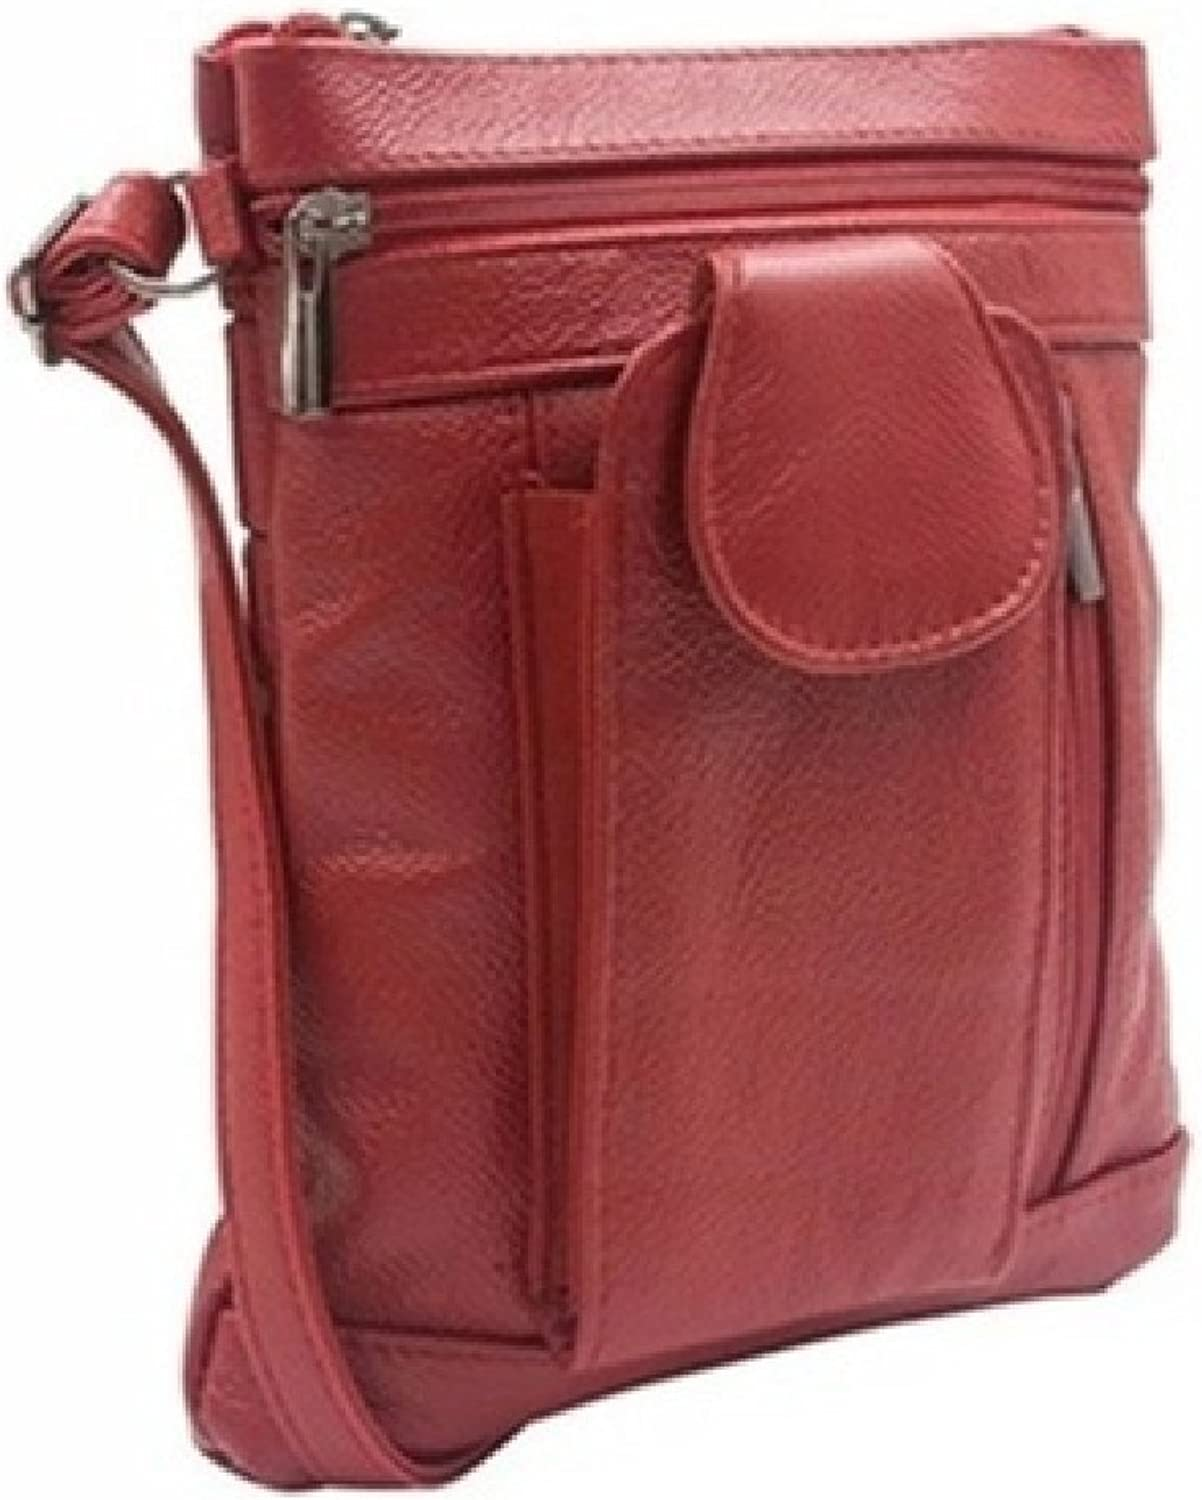 OntheGo Soft Leather Crossbody Bag  6 Styles